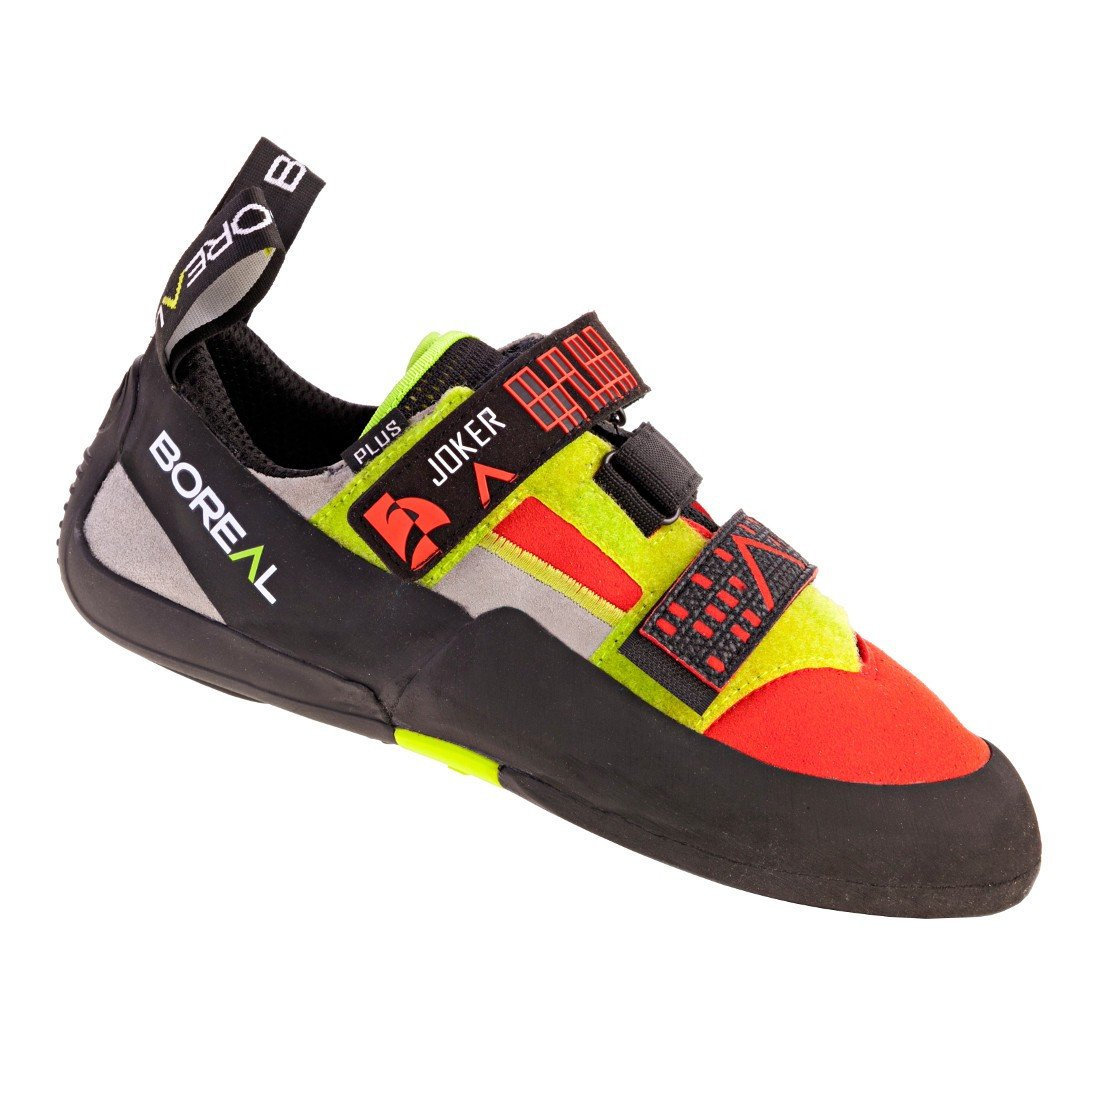 Boreal Joker Plus climbing shoe in black, red and yellow colours